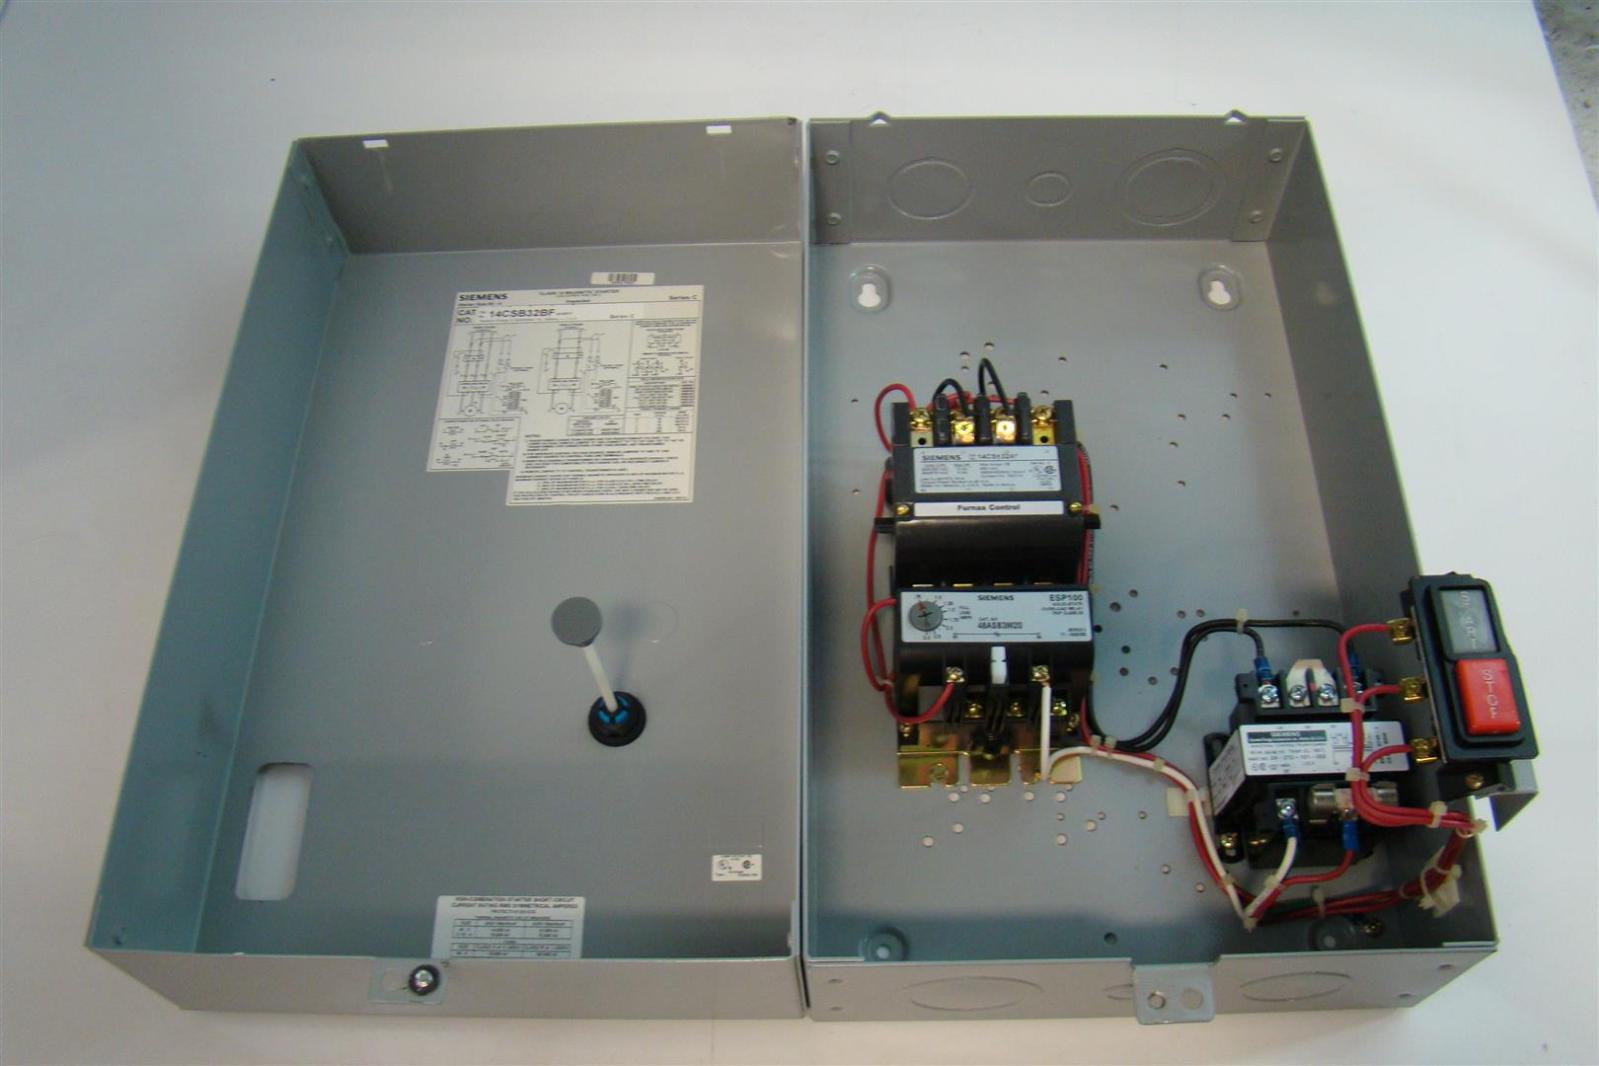 Siemens magnetic starter wiring diagram new wiring diagram 2018 excellent 3ph motor starter contemporary electrical circuit 3 phase motor starter diagram basic starter wiring diagram wiring diagram contactor siemens cheapraybanclubmaster Image collections